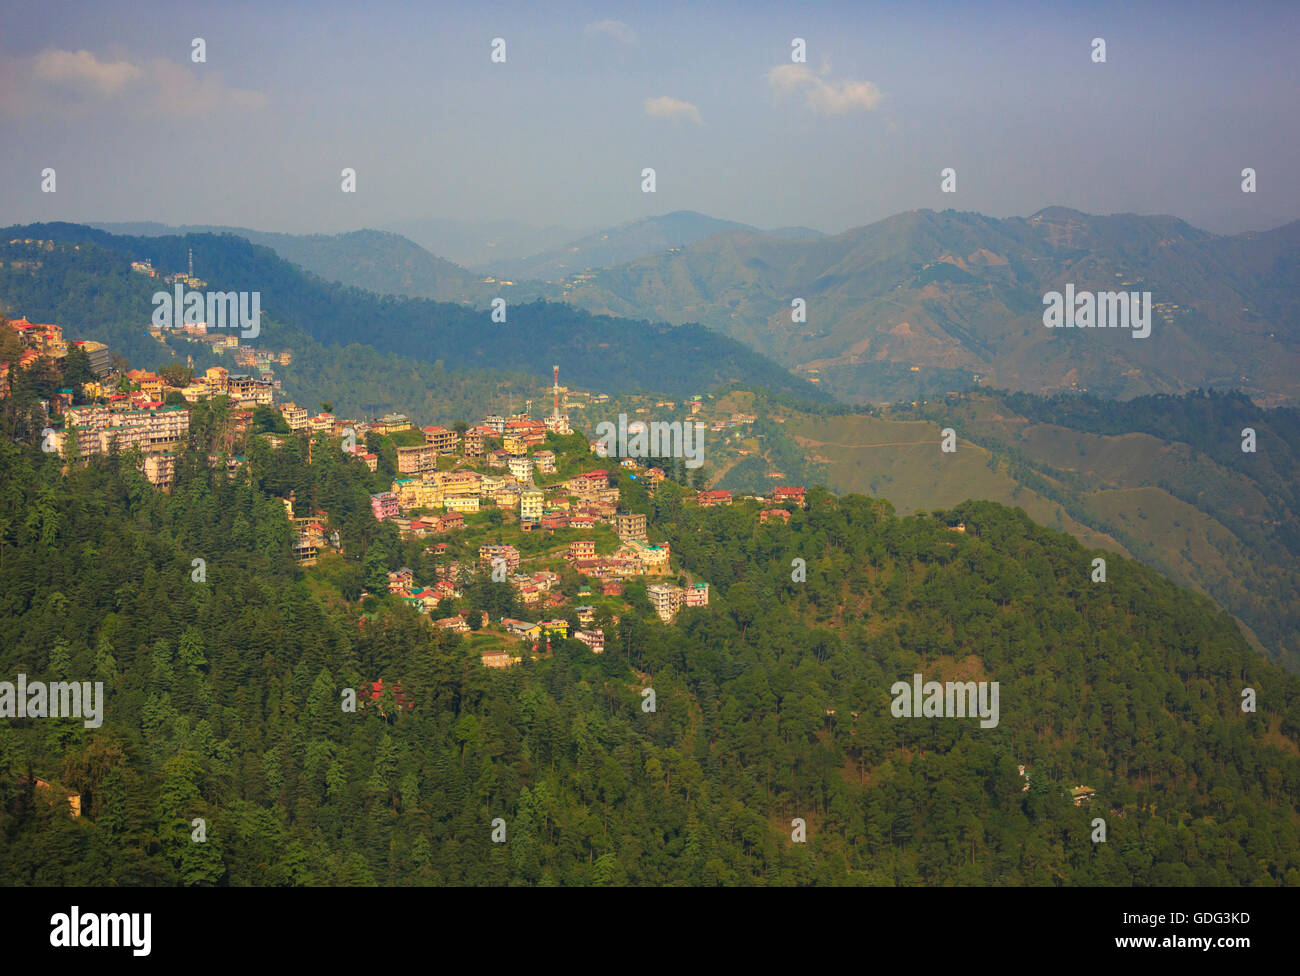 Scenic view of Shimla (Himachal Pradesh, India) - Stock Image